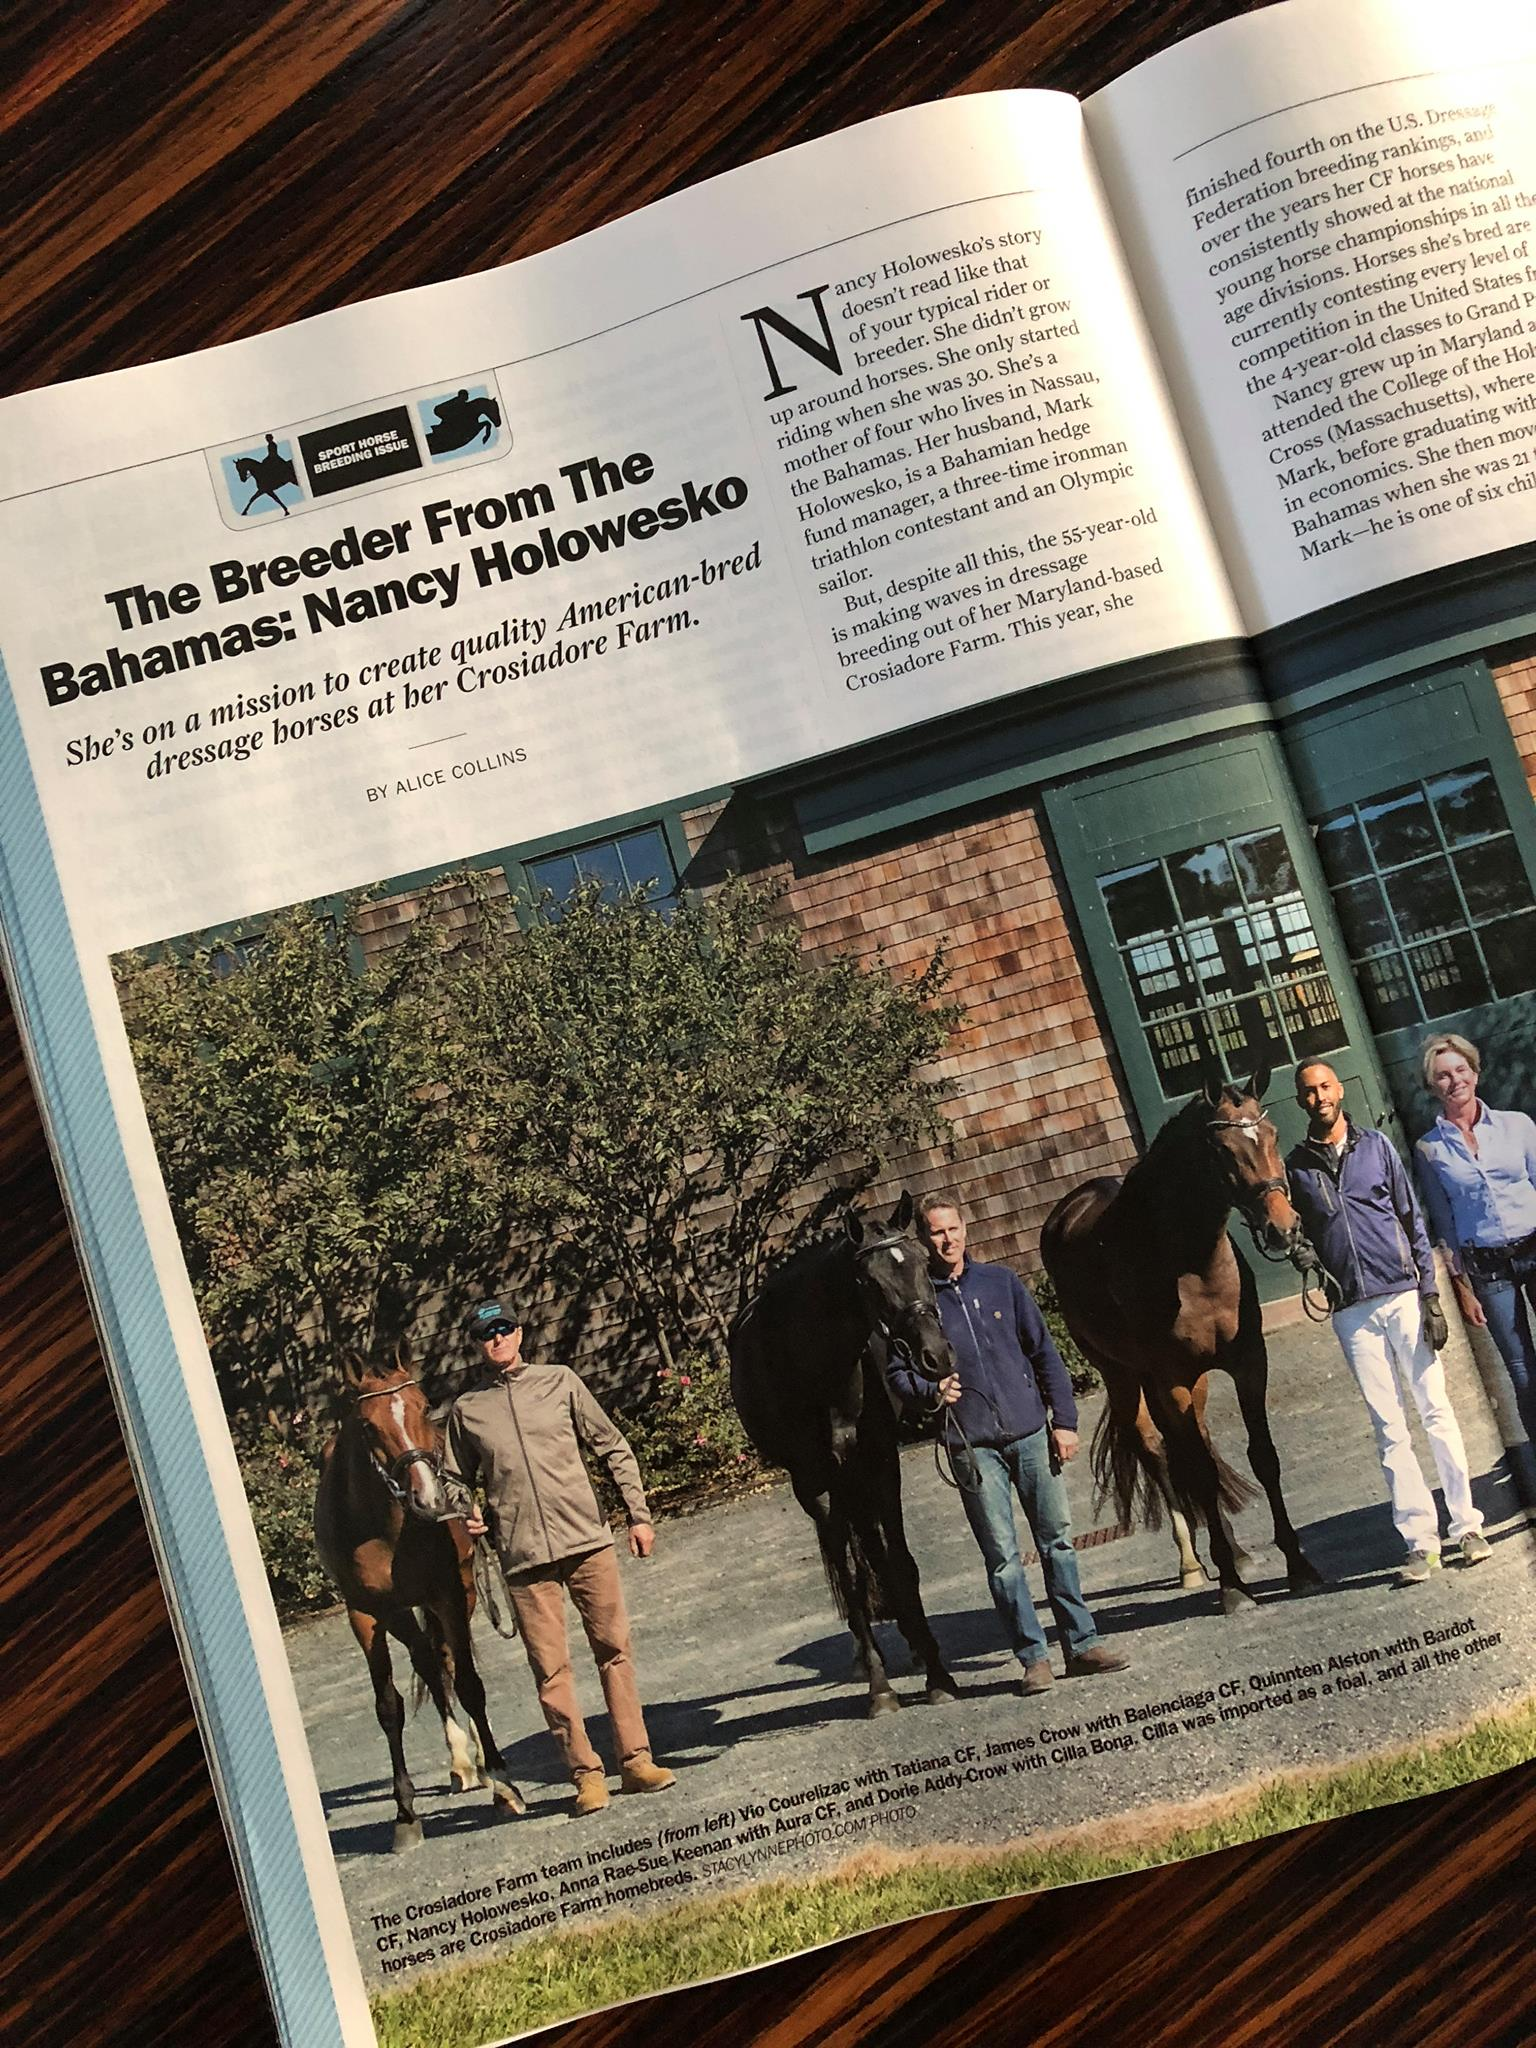 CHronicle of the horse - 2018 Article on our breeding programMore Information